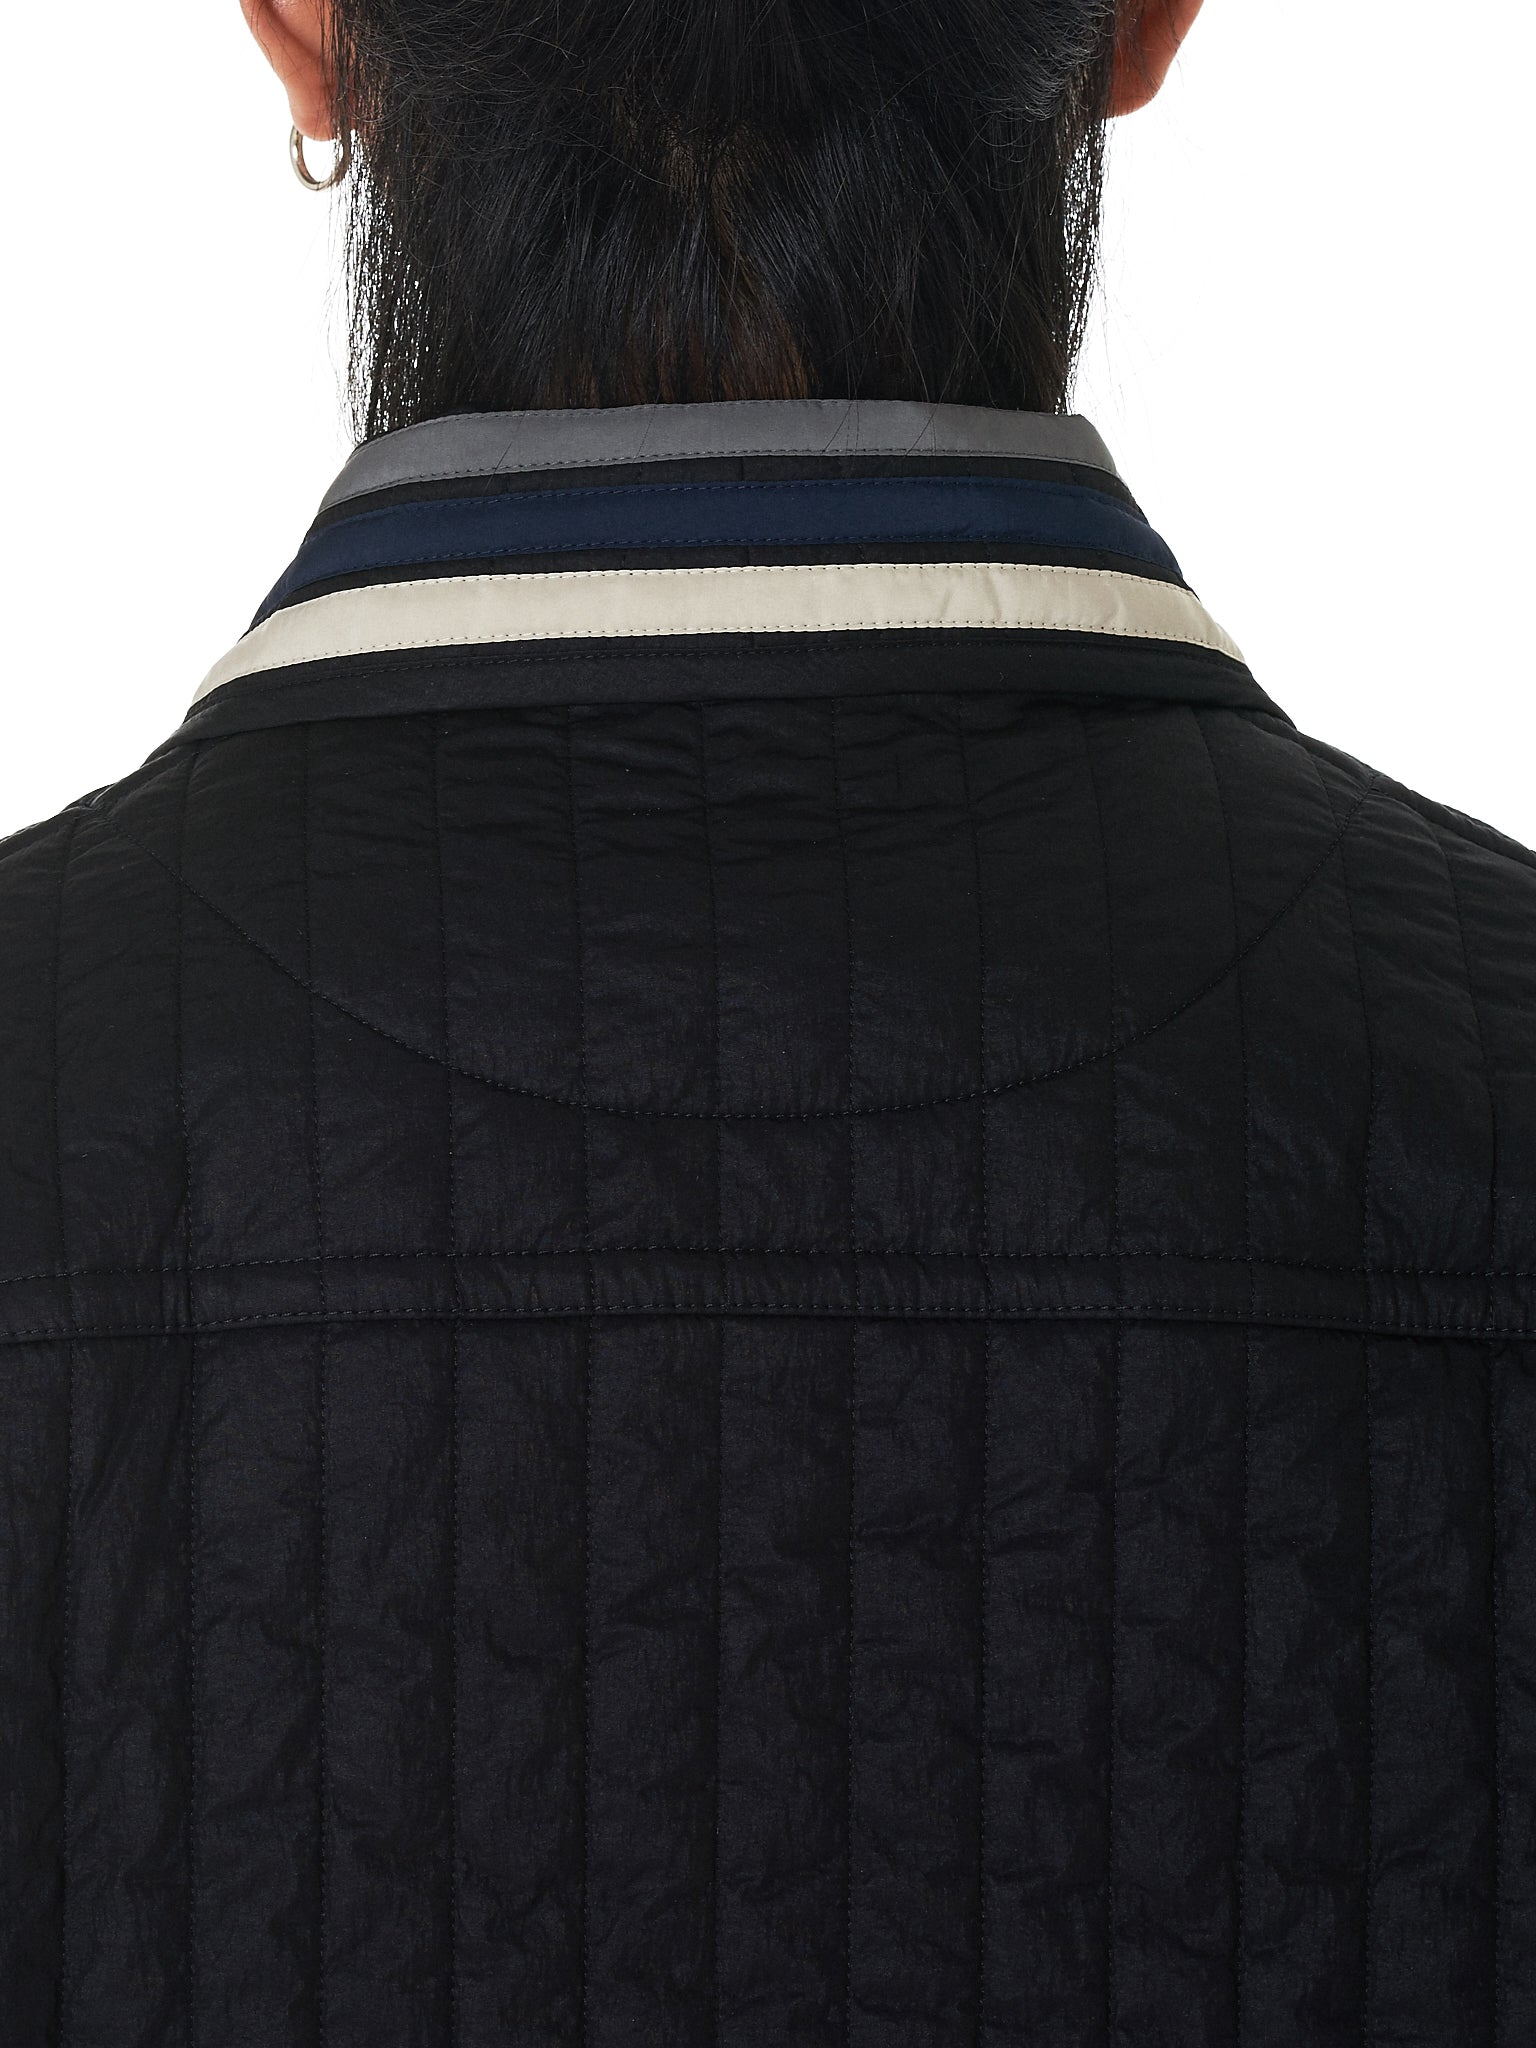 Craig Green Work Jacket - Hlorenzo Detail 1